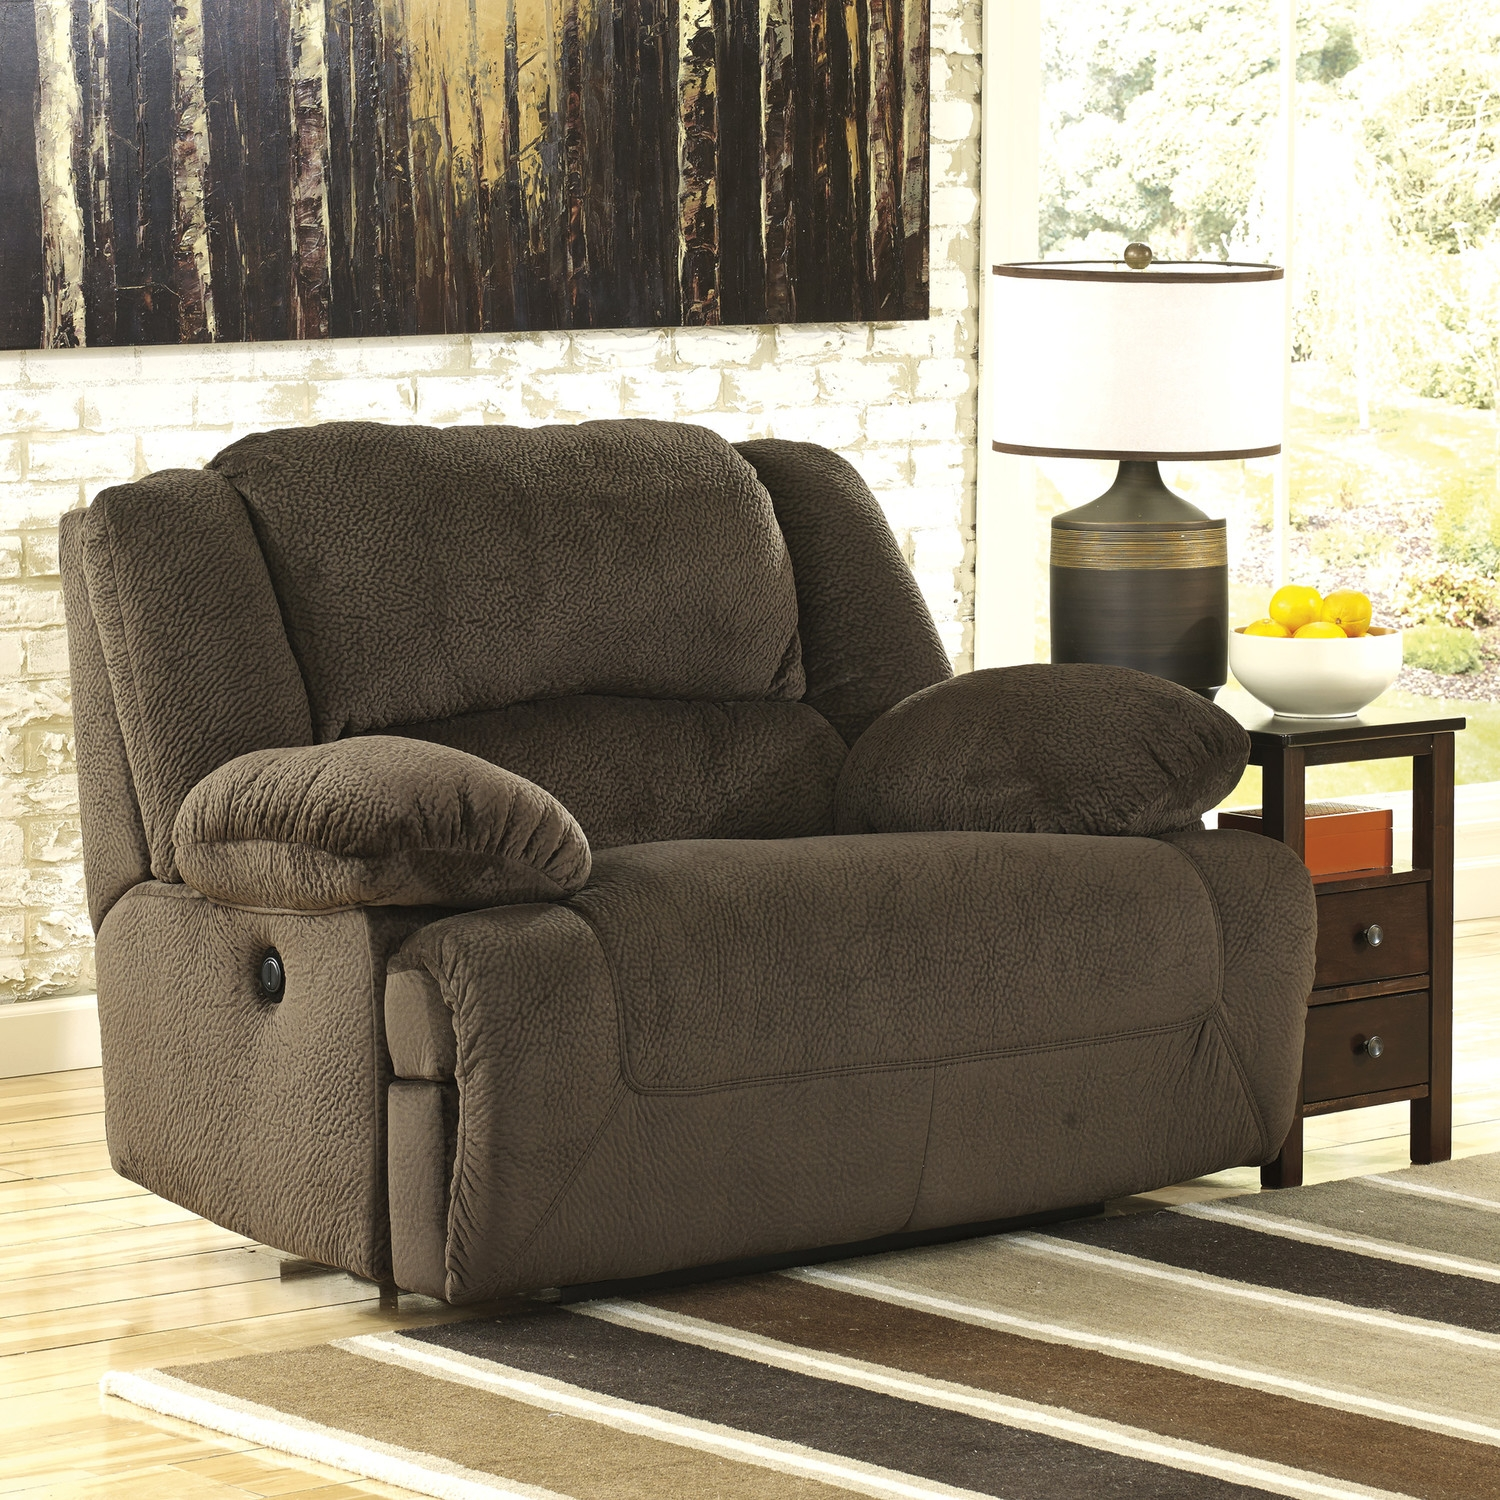 Statue Of Oversized Recliner Chair Product Selections Furniture Within Wide Sofa Chairs (Image 13 of 15)